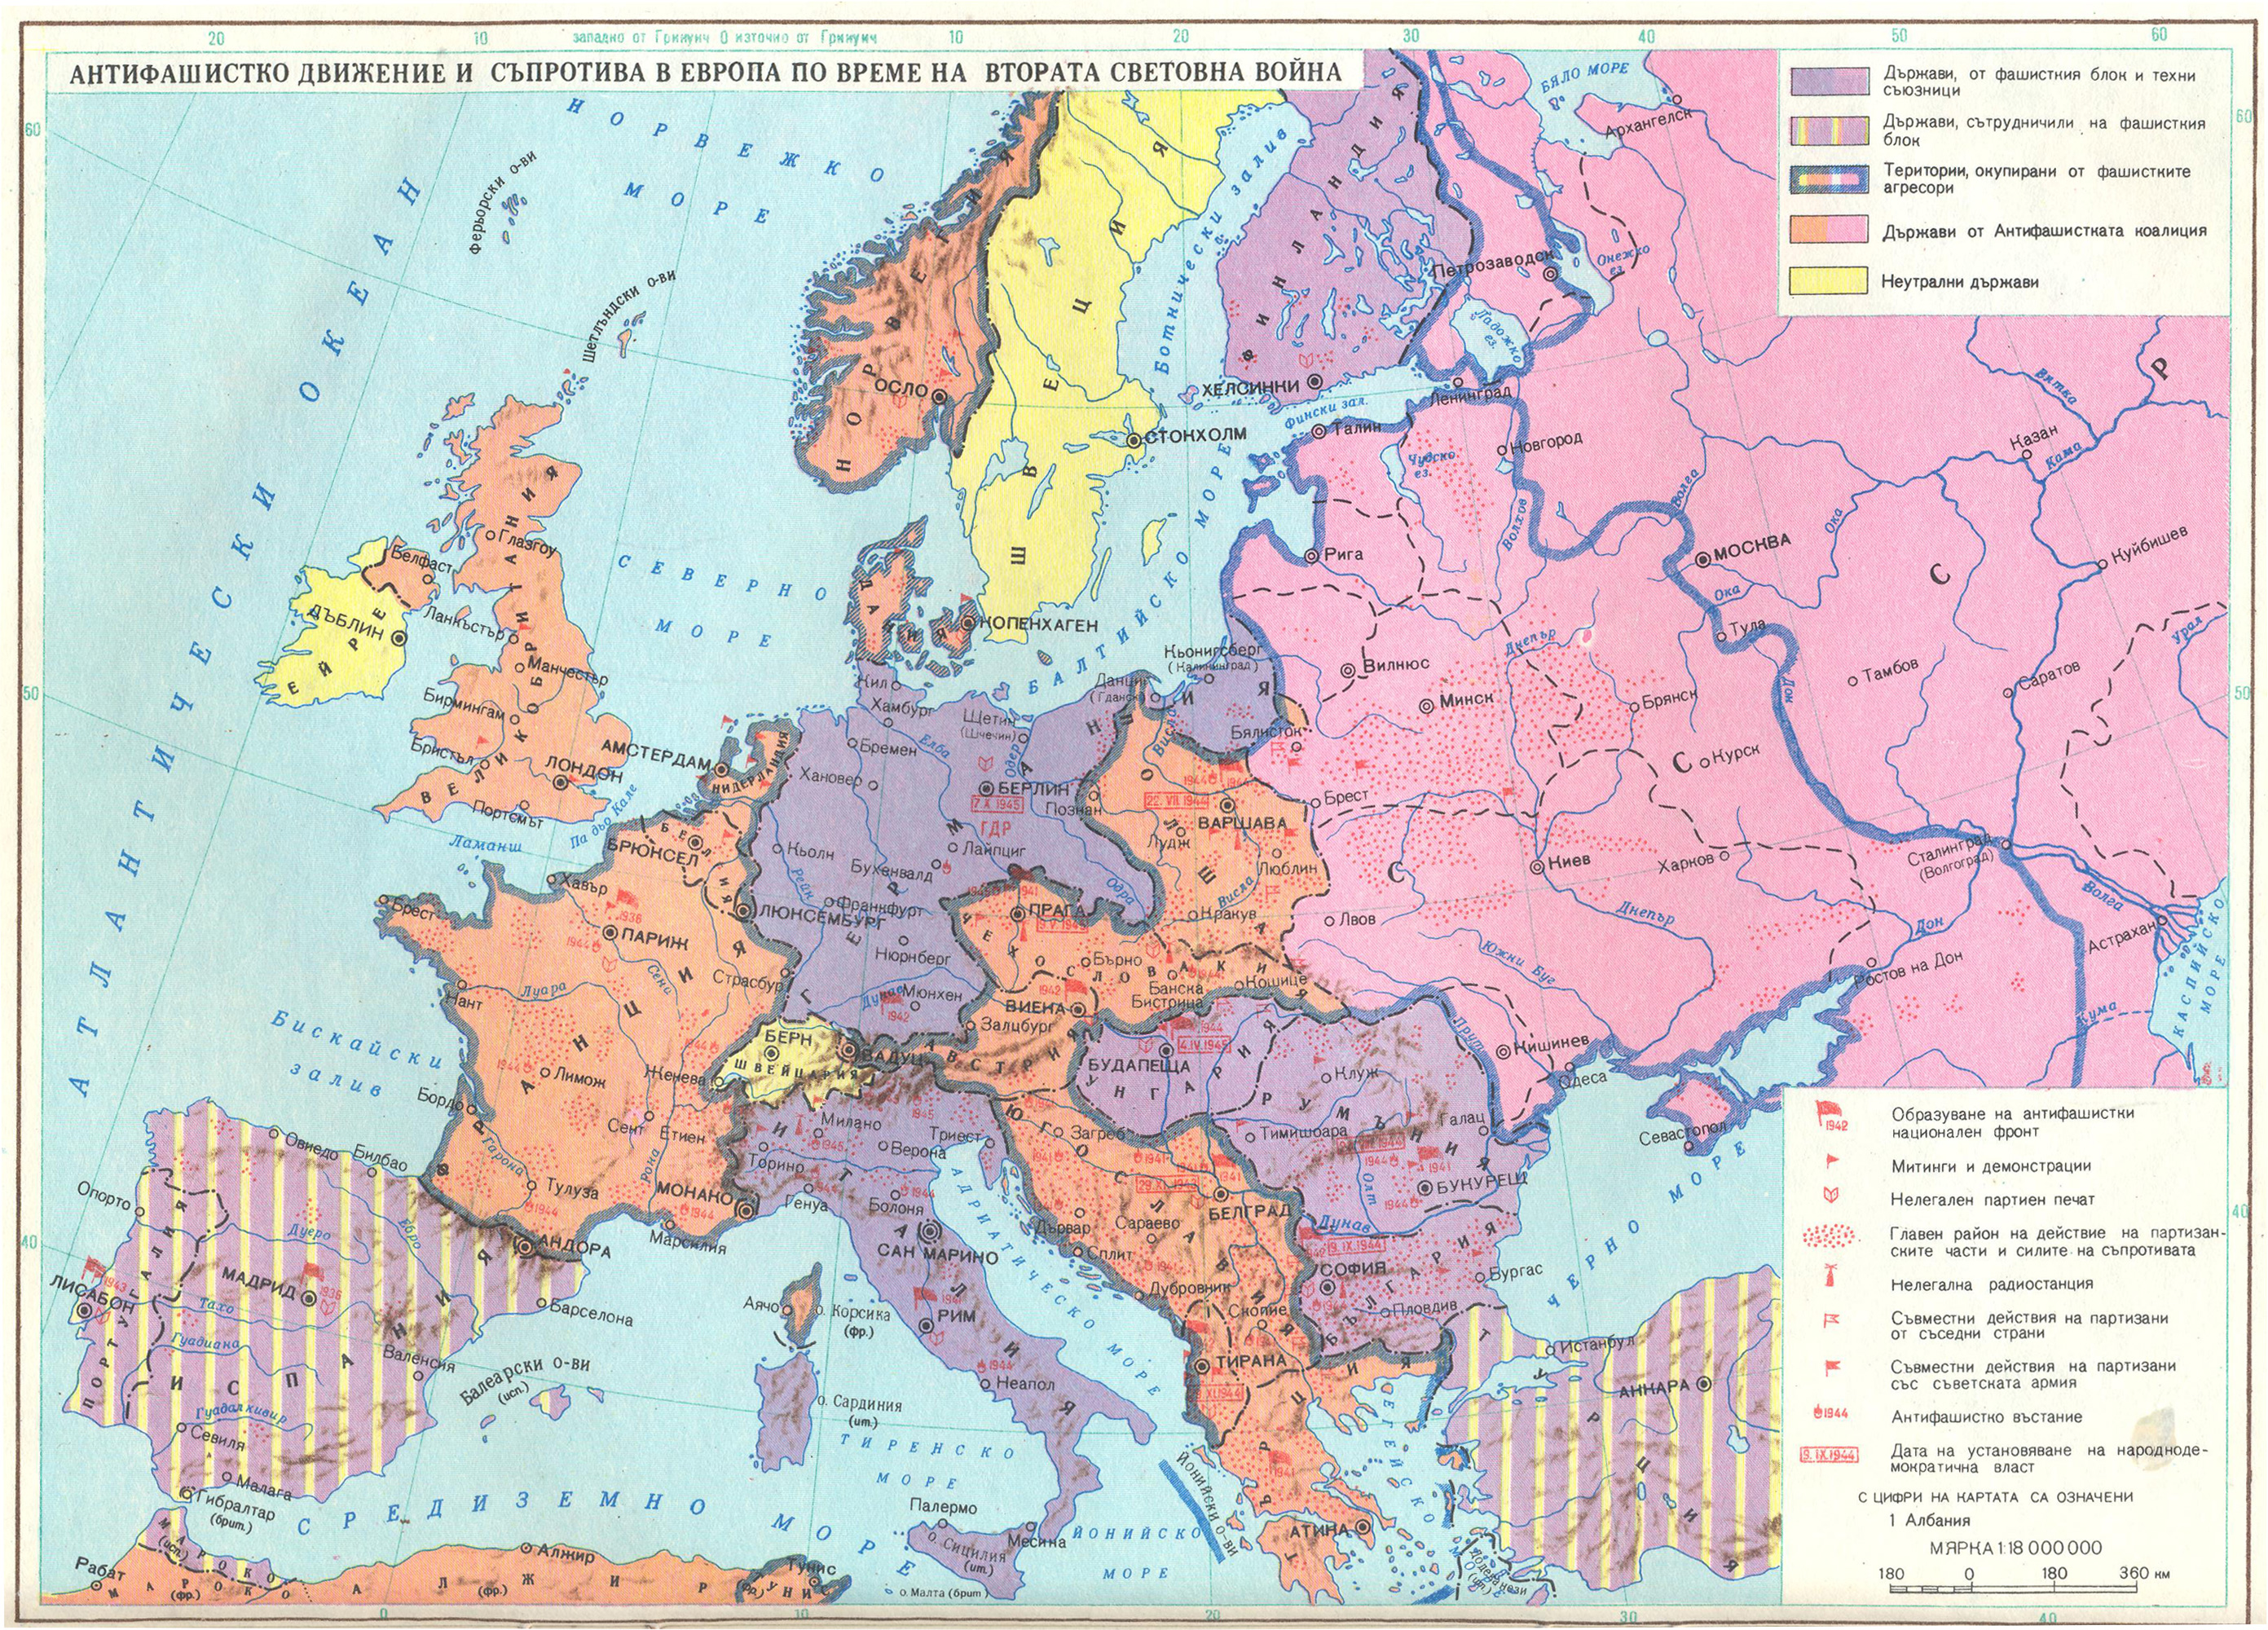 Anti Fascism Movement in Europe | HD Maps on map of control, map of tectonic, map of sundial, map of activity, map of exercise, map of myth, map of muscle groups, map of metabolism, map of speech, map of pressure, map of growth, map of digestion, map of mandala, map of writing, map of position, map of left brain, map of thinking, map of sounds, map of mime, map of shapes,